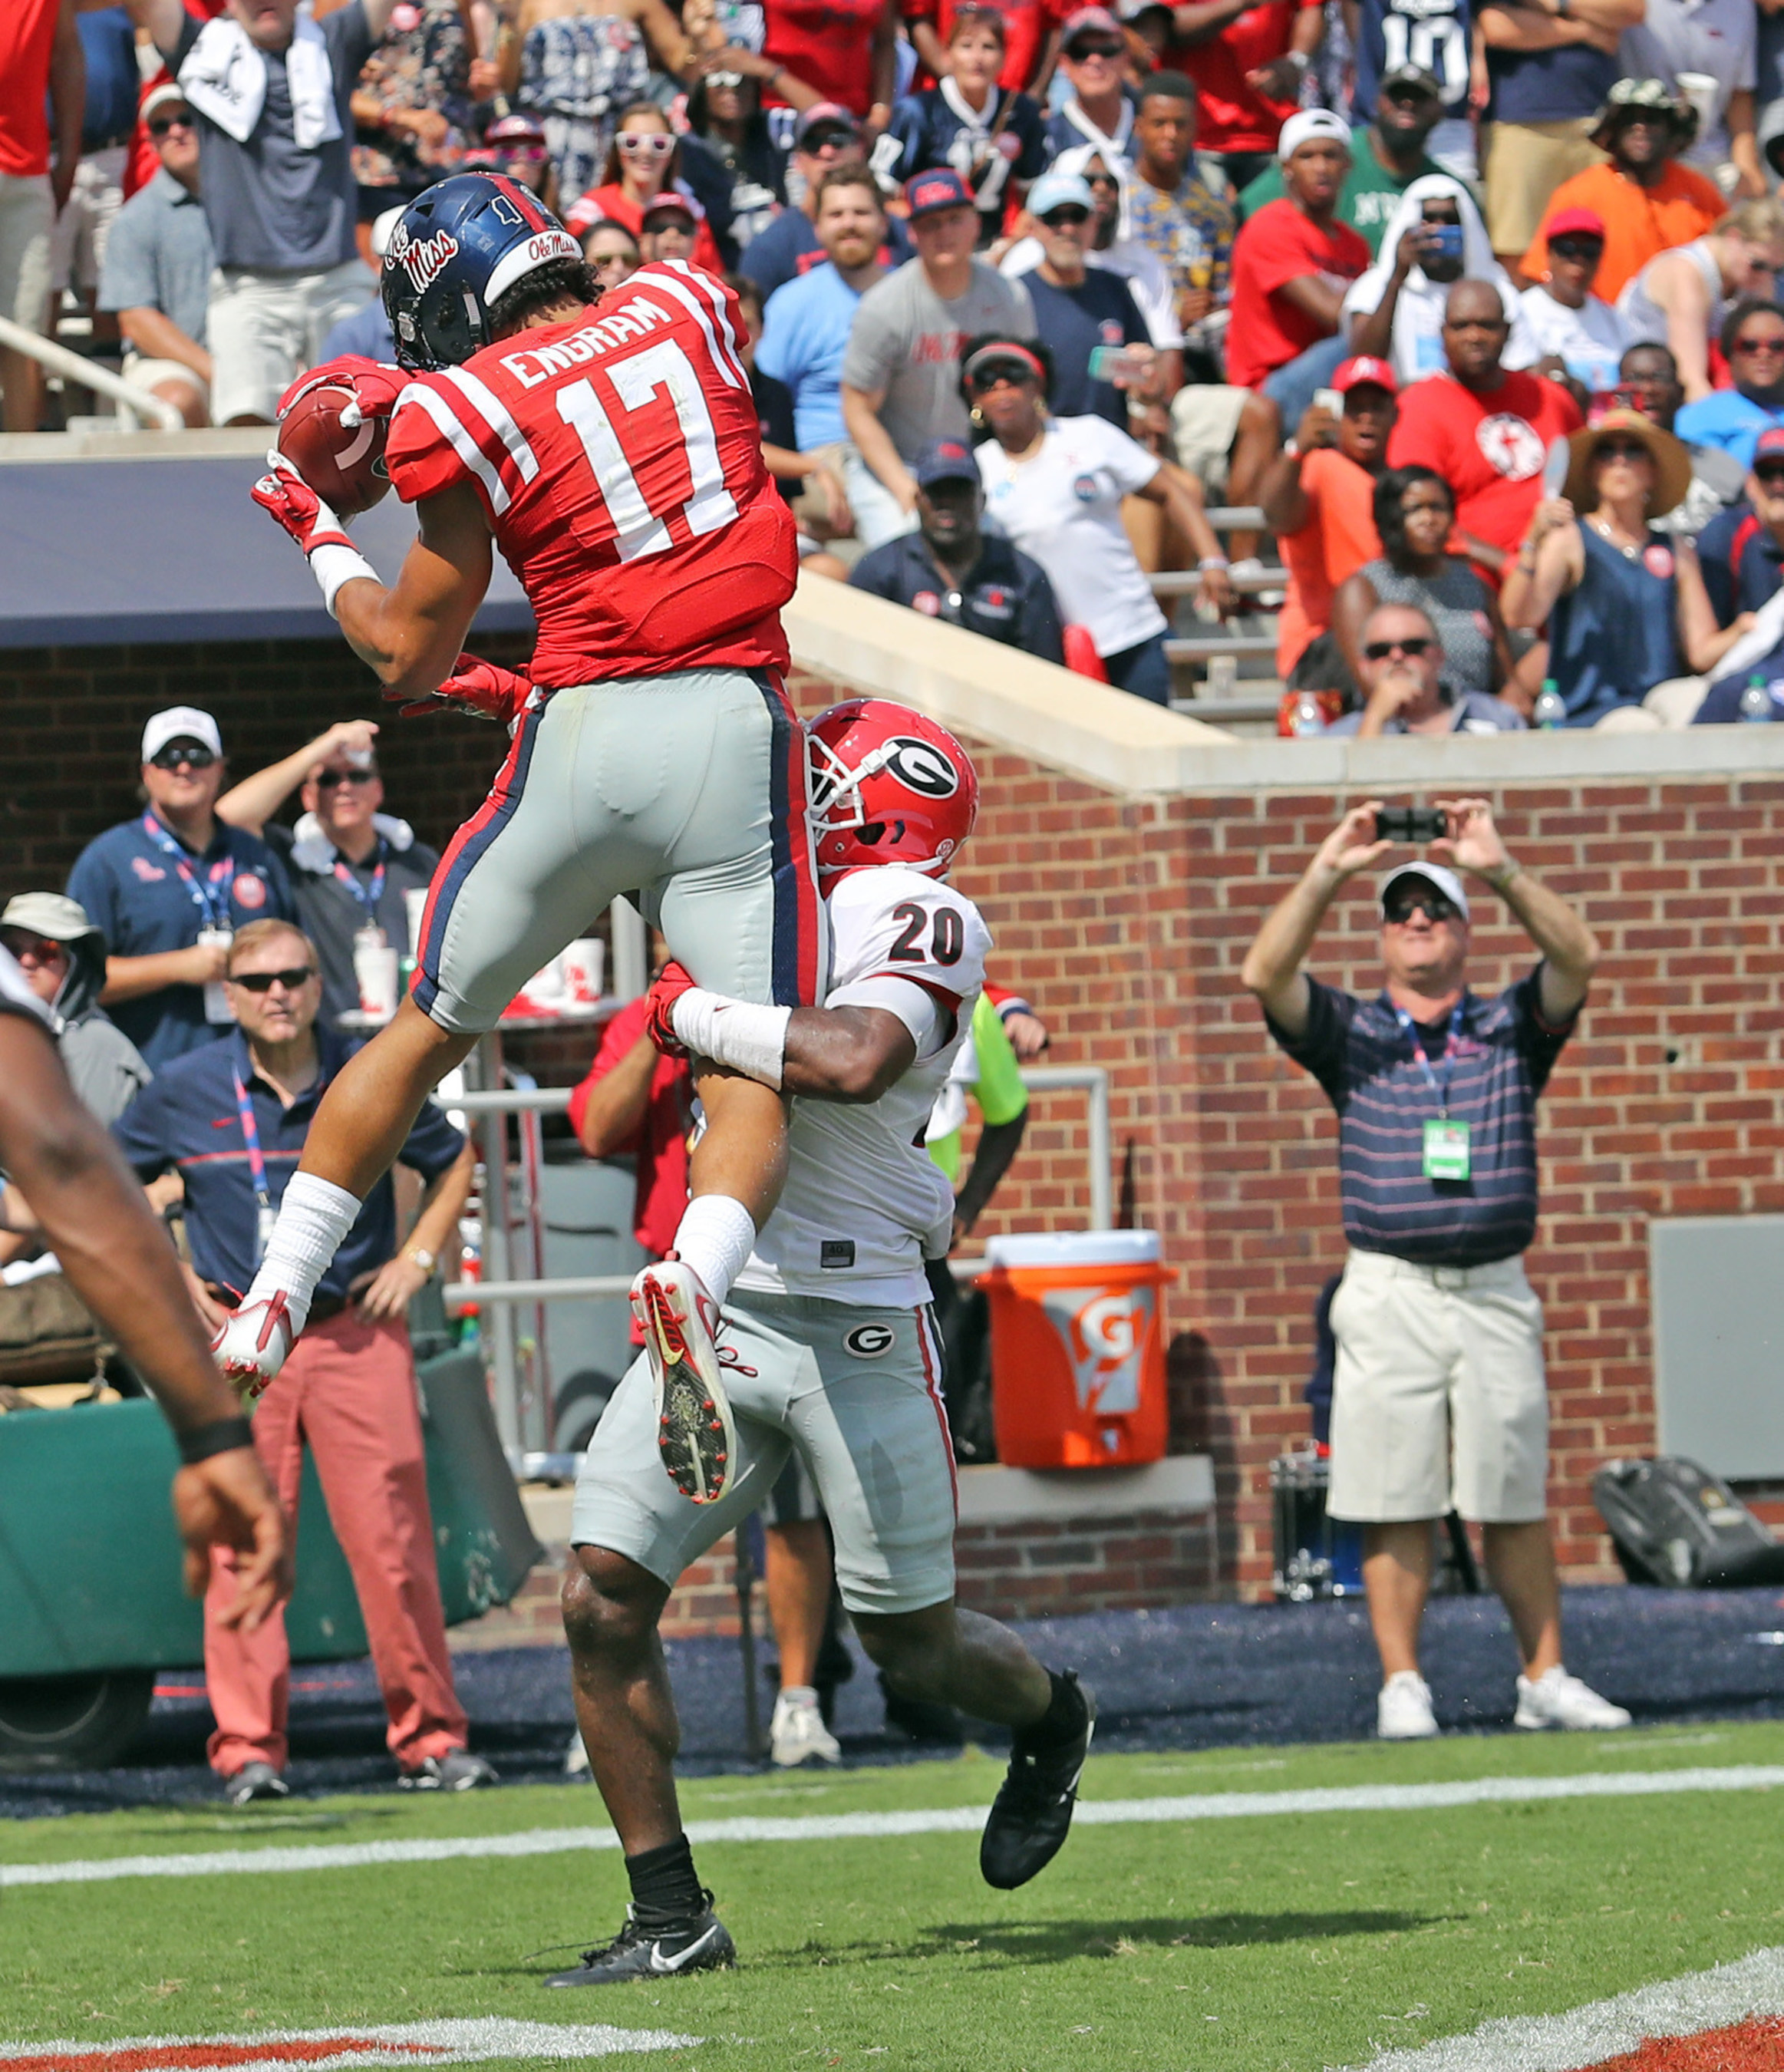 Ole Miss tight end Evan Engram, who leads the nation in receiving among college tight ends, is a finalist for the 2016 C Spire Conerly Trophy, which annually honors the top college football player in Mississippi. Photo Credit: Ole Miss Athletics